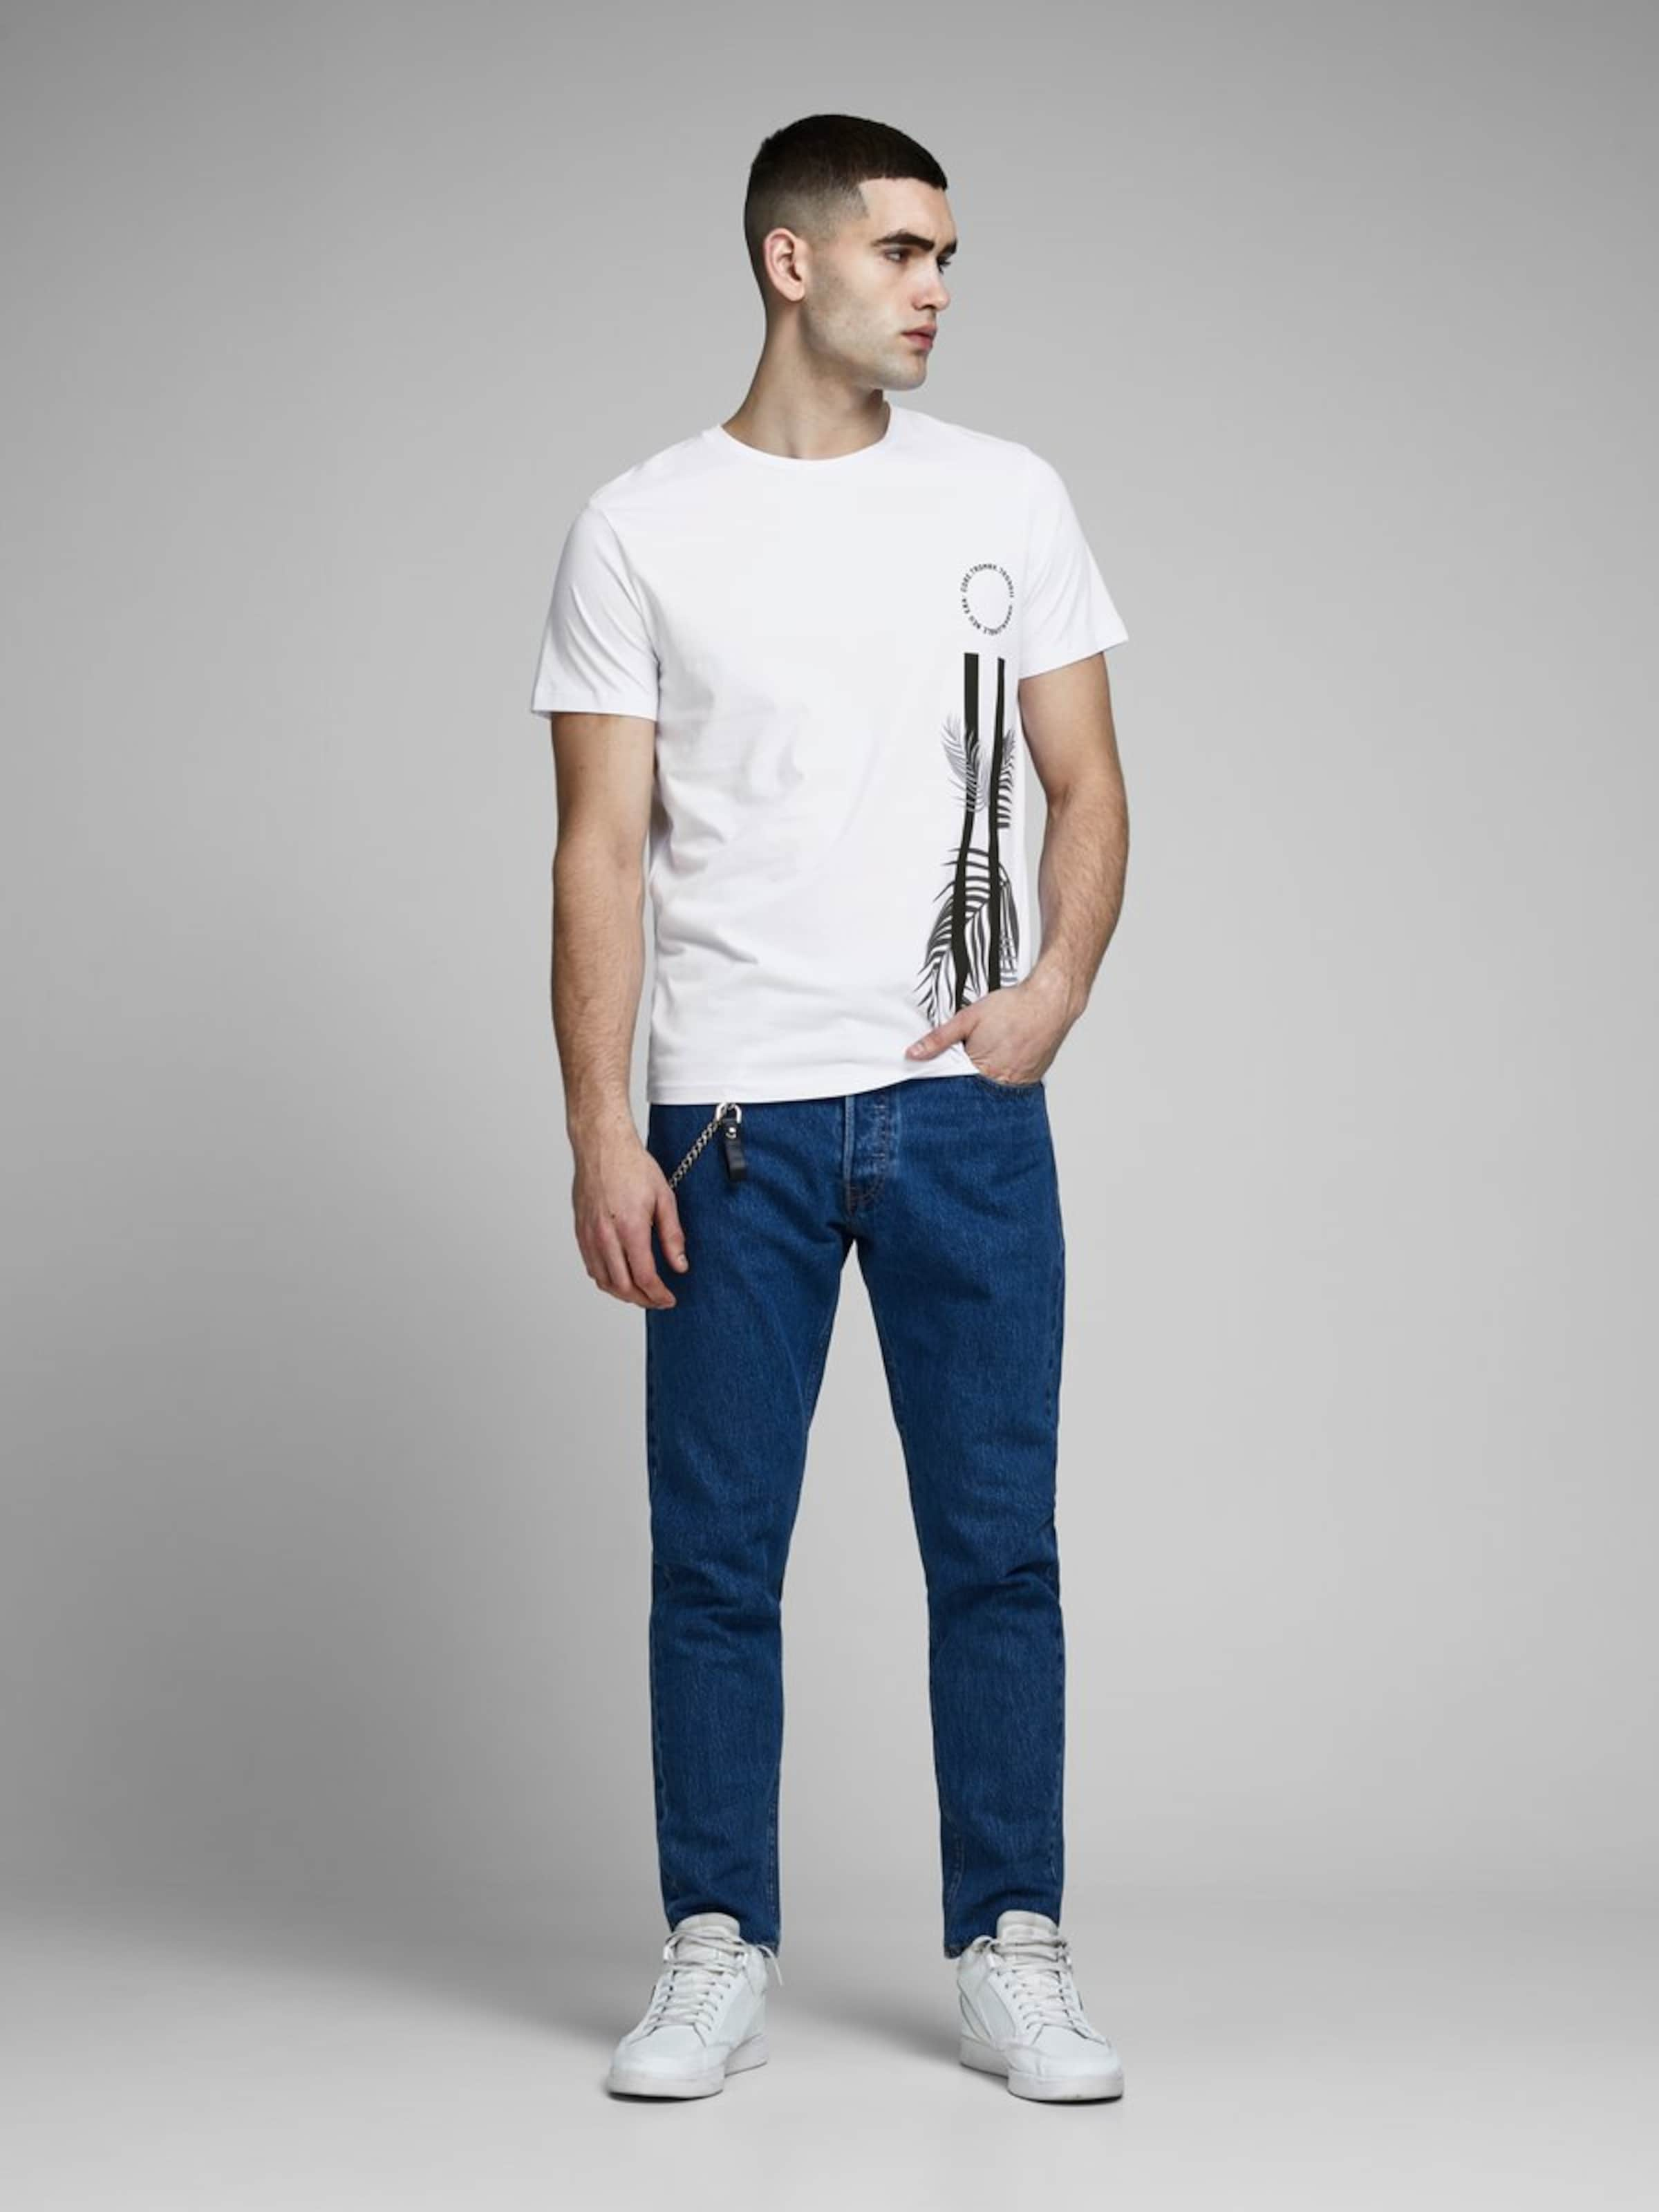 Blanc shirt En T Jones Jackamp; vbyI76gfY